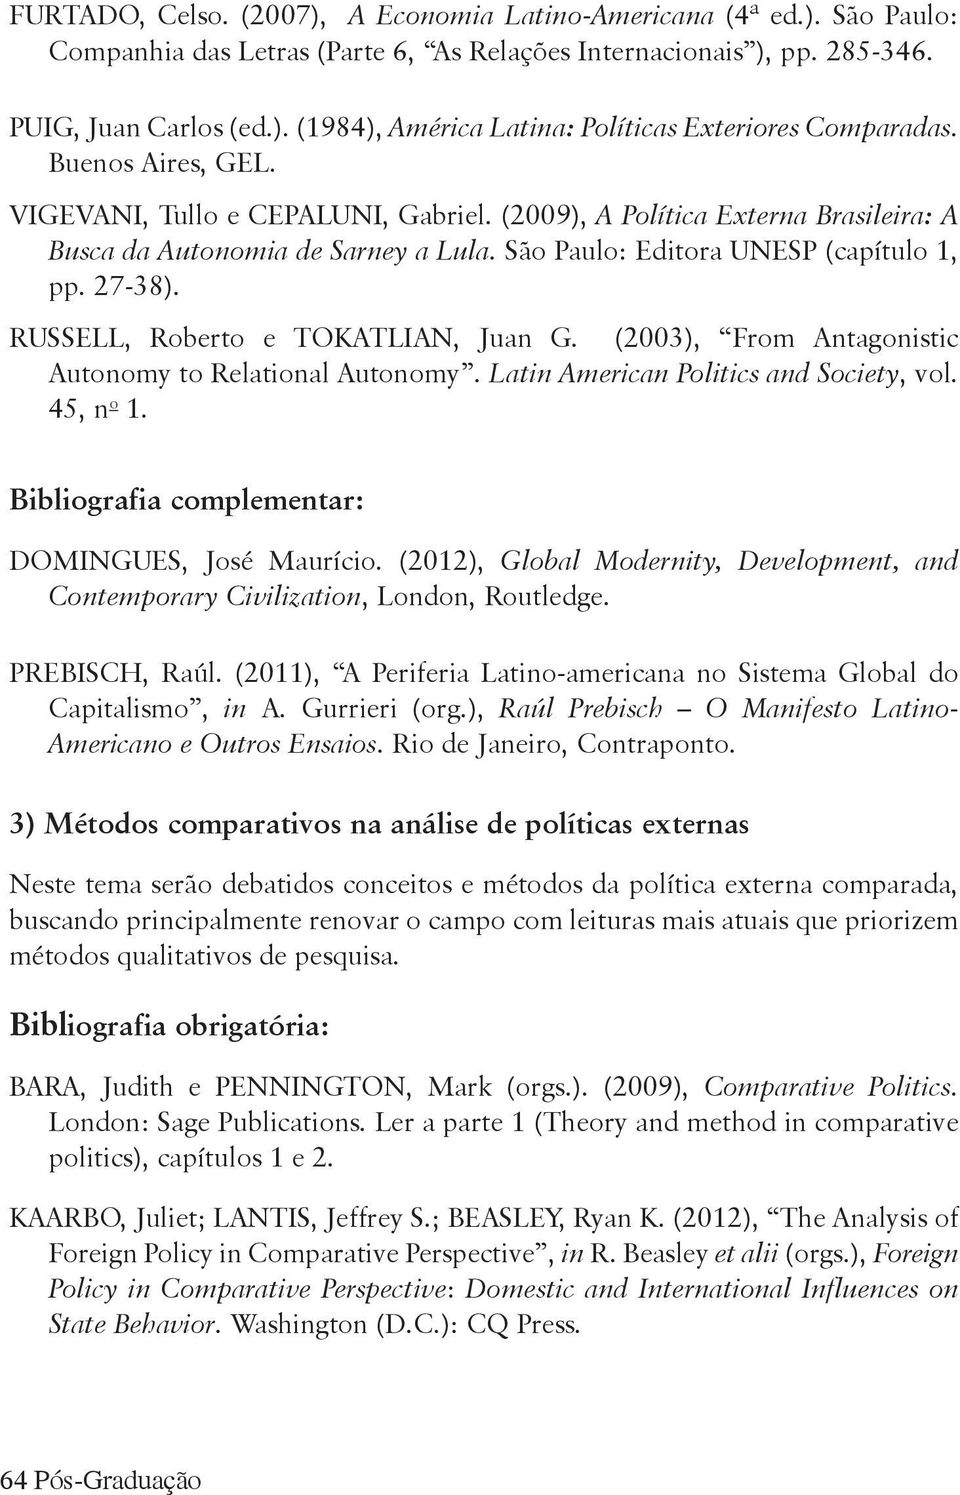 RUSSELL, Roberto e TOKATLIAN, Juan G. (2003), From Antagonistic Autonomy to Relational Autonomy. Latin American Politics and Society, vol. 45, n o 1.